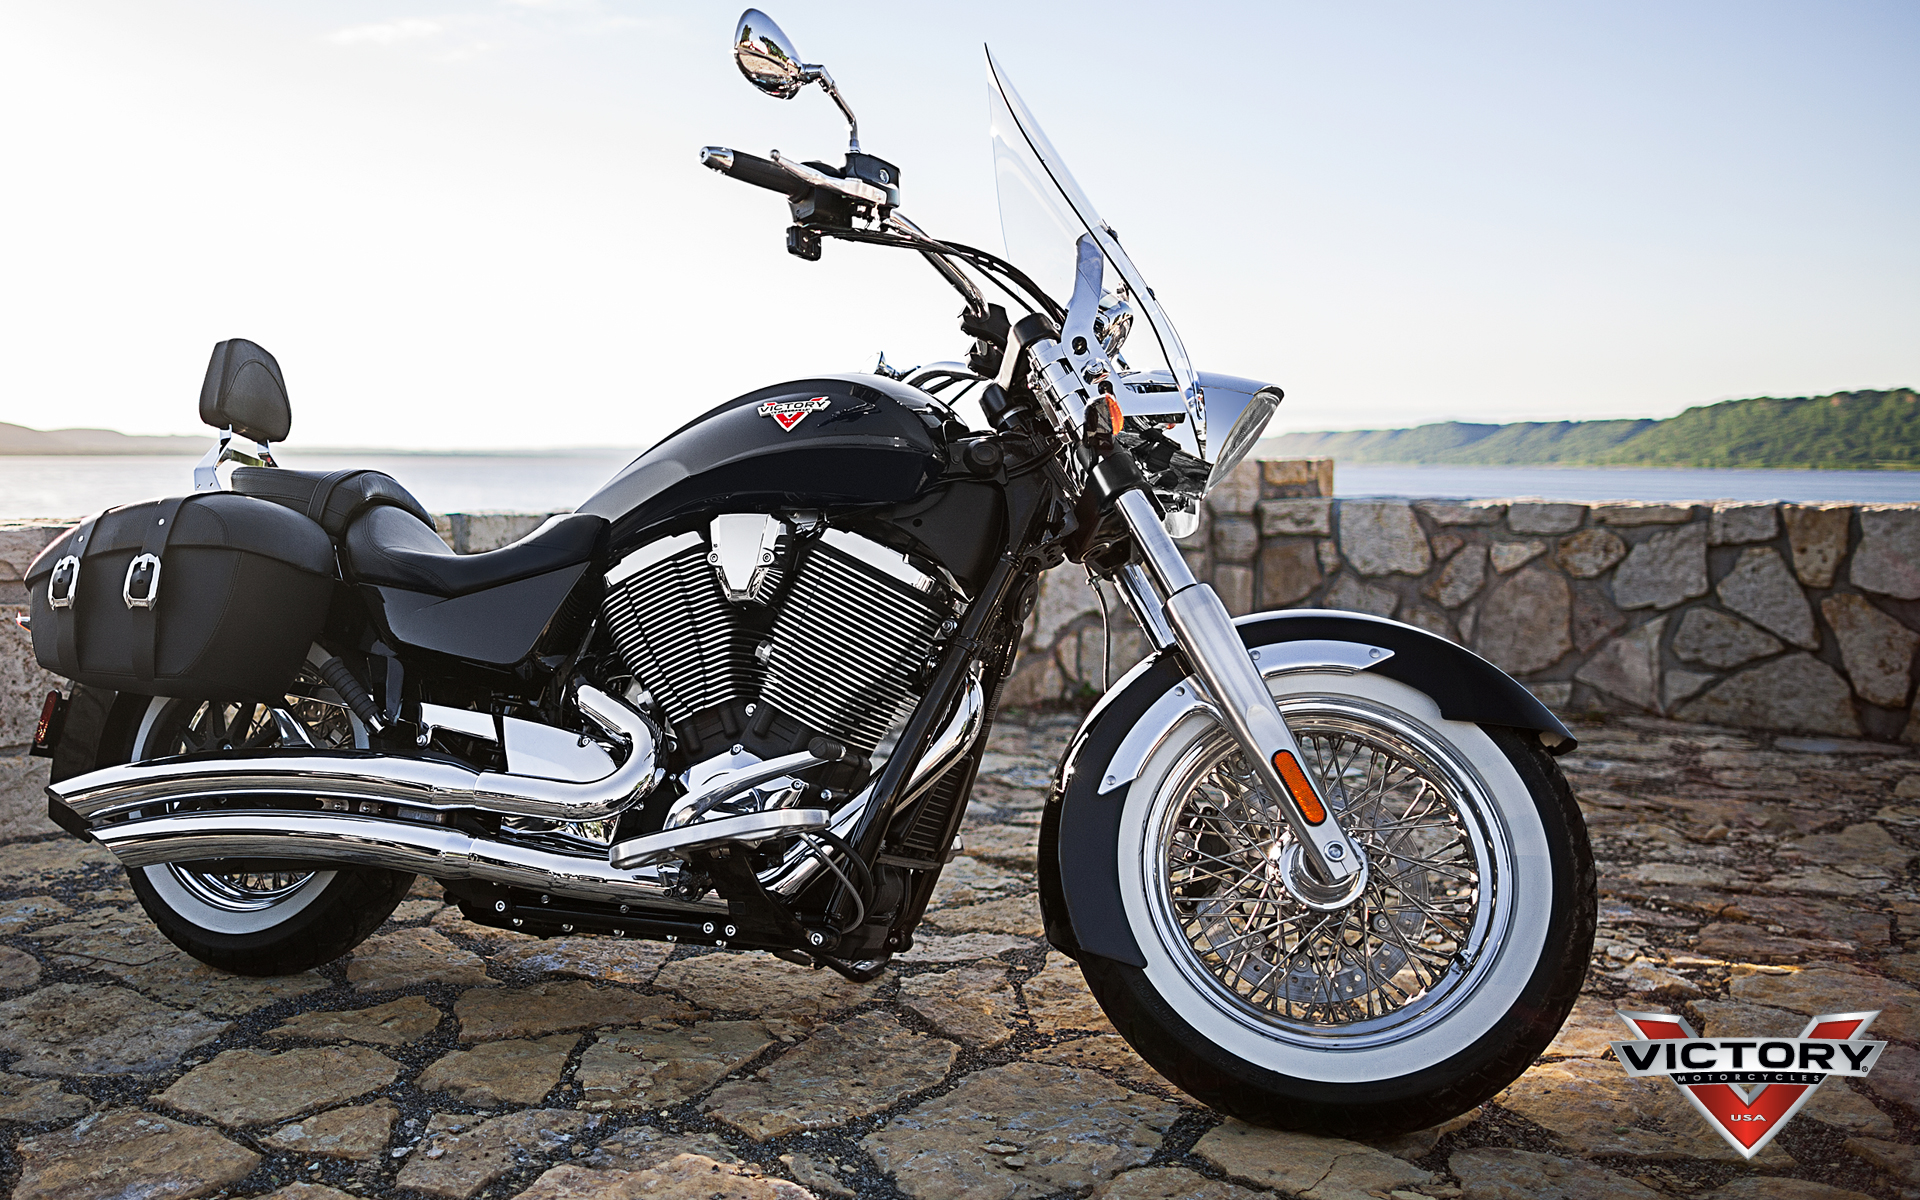 Object Moved: Victory Motorcycles Wallpaper